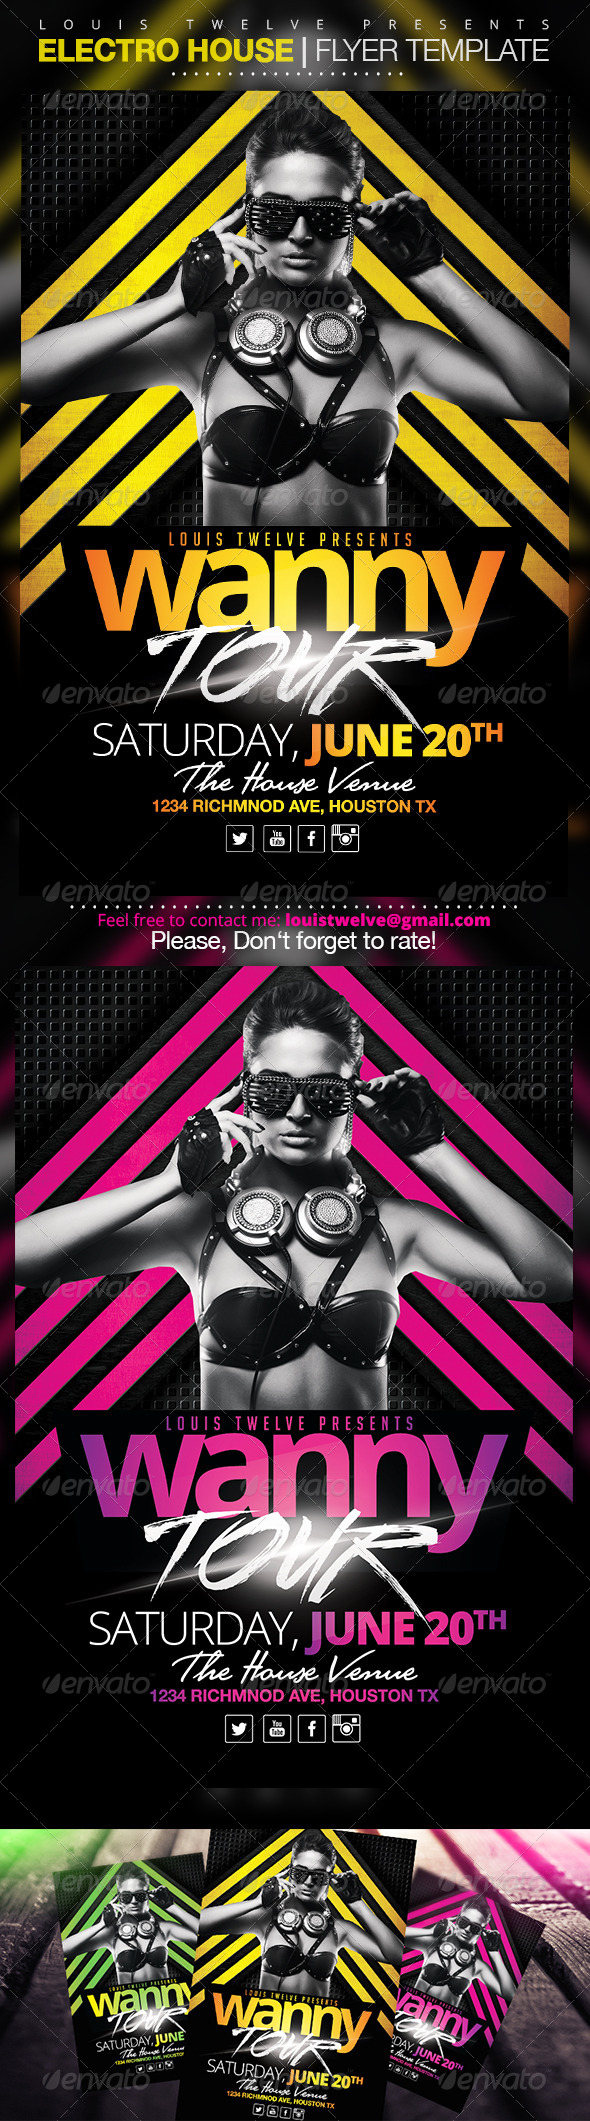 GraphicRiver Electro House 2 Flyer Template 6970945